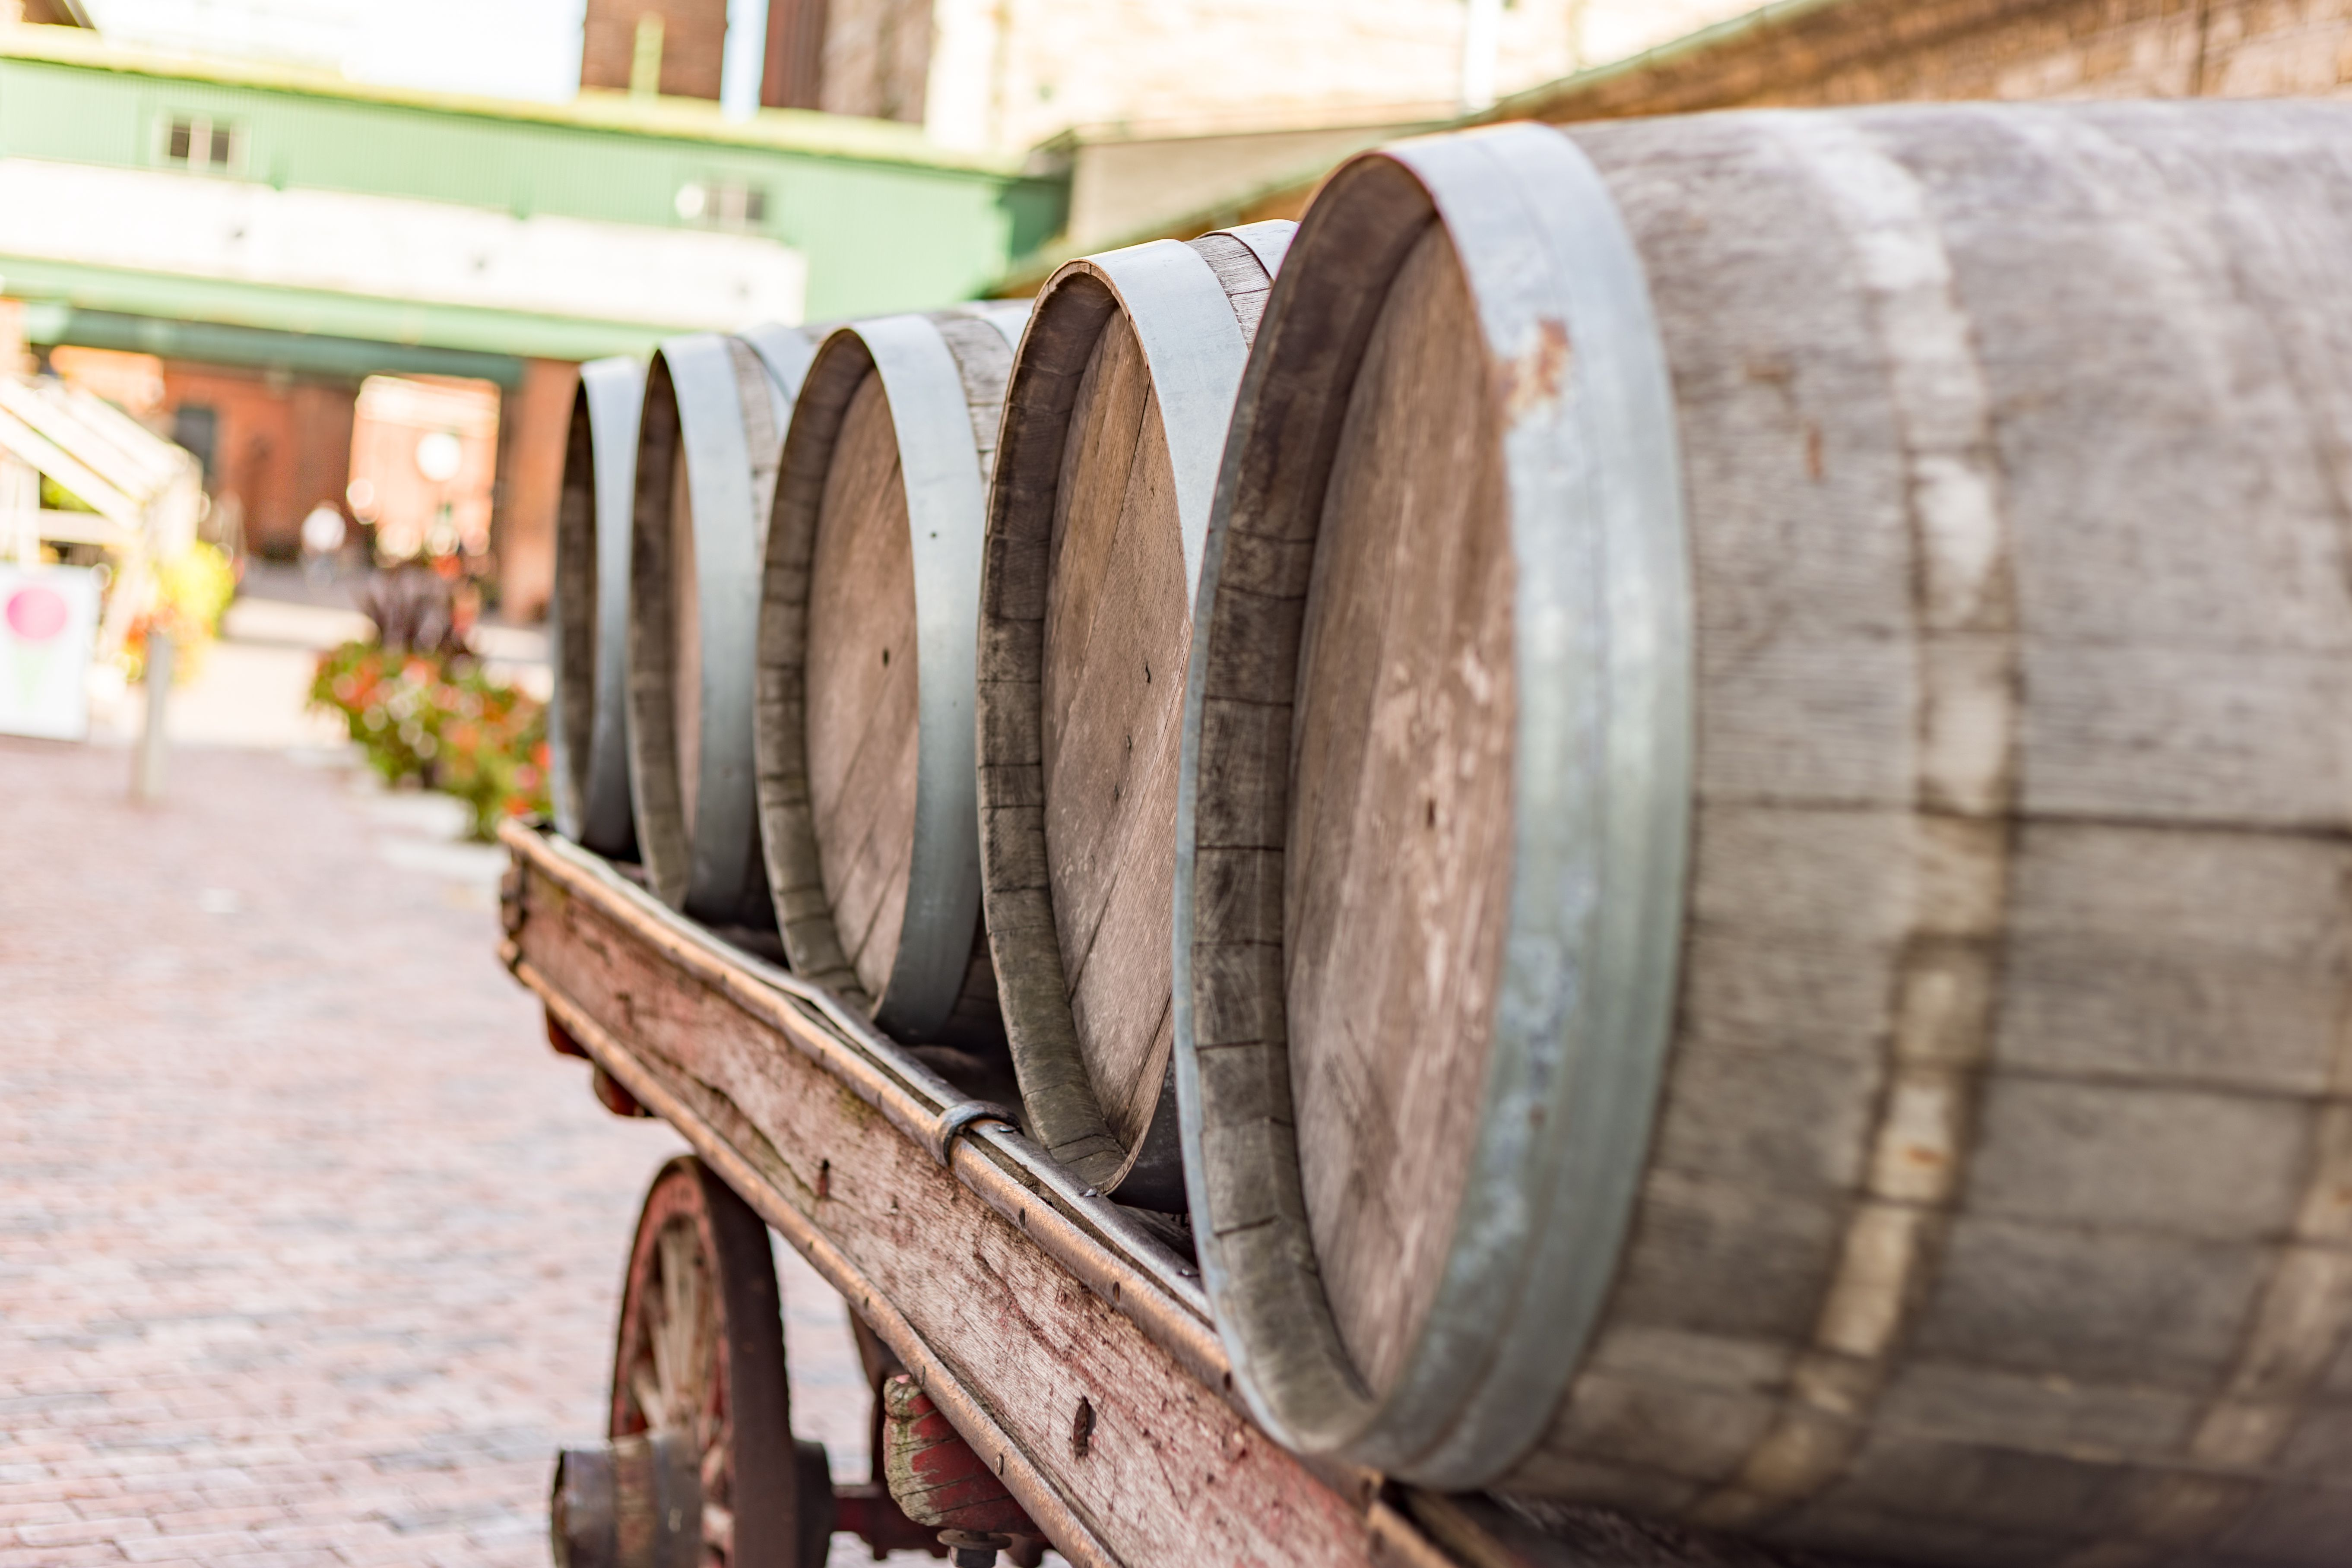 Barrels lined up on a carriage